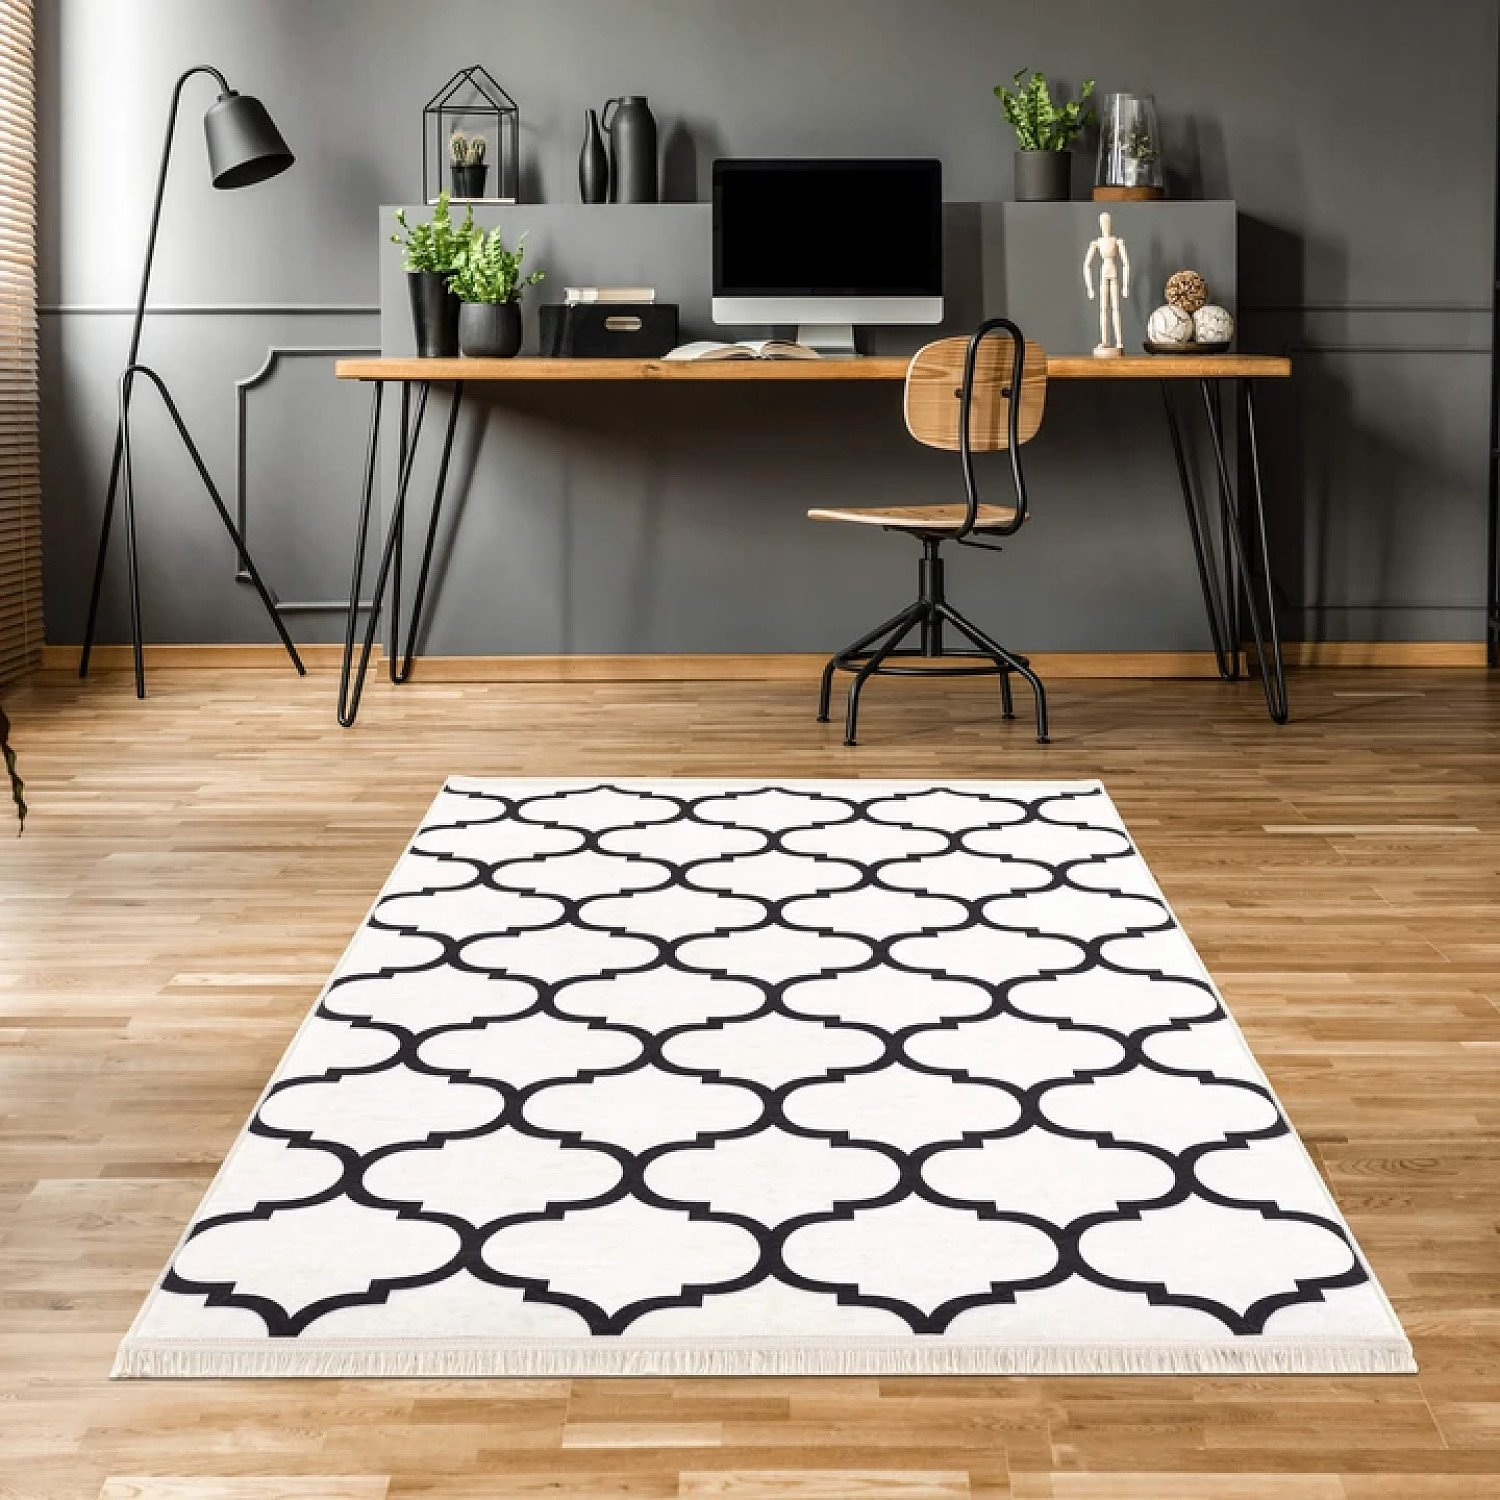 Caimas Collection Washable Rugs in White Free Postage 10% off all orders over £30